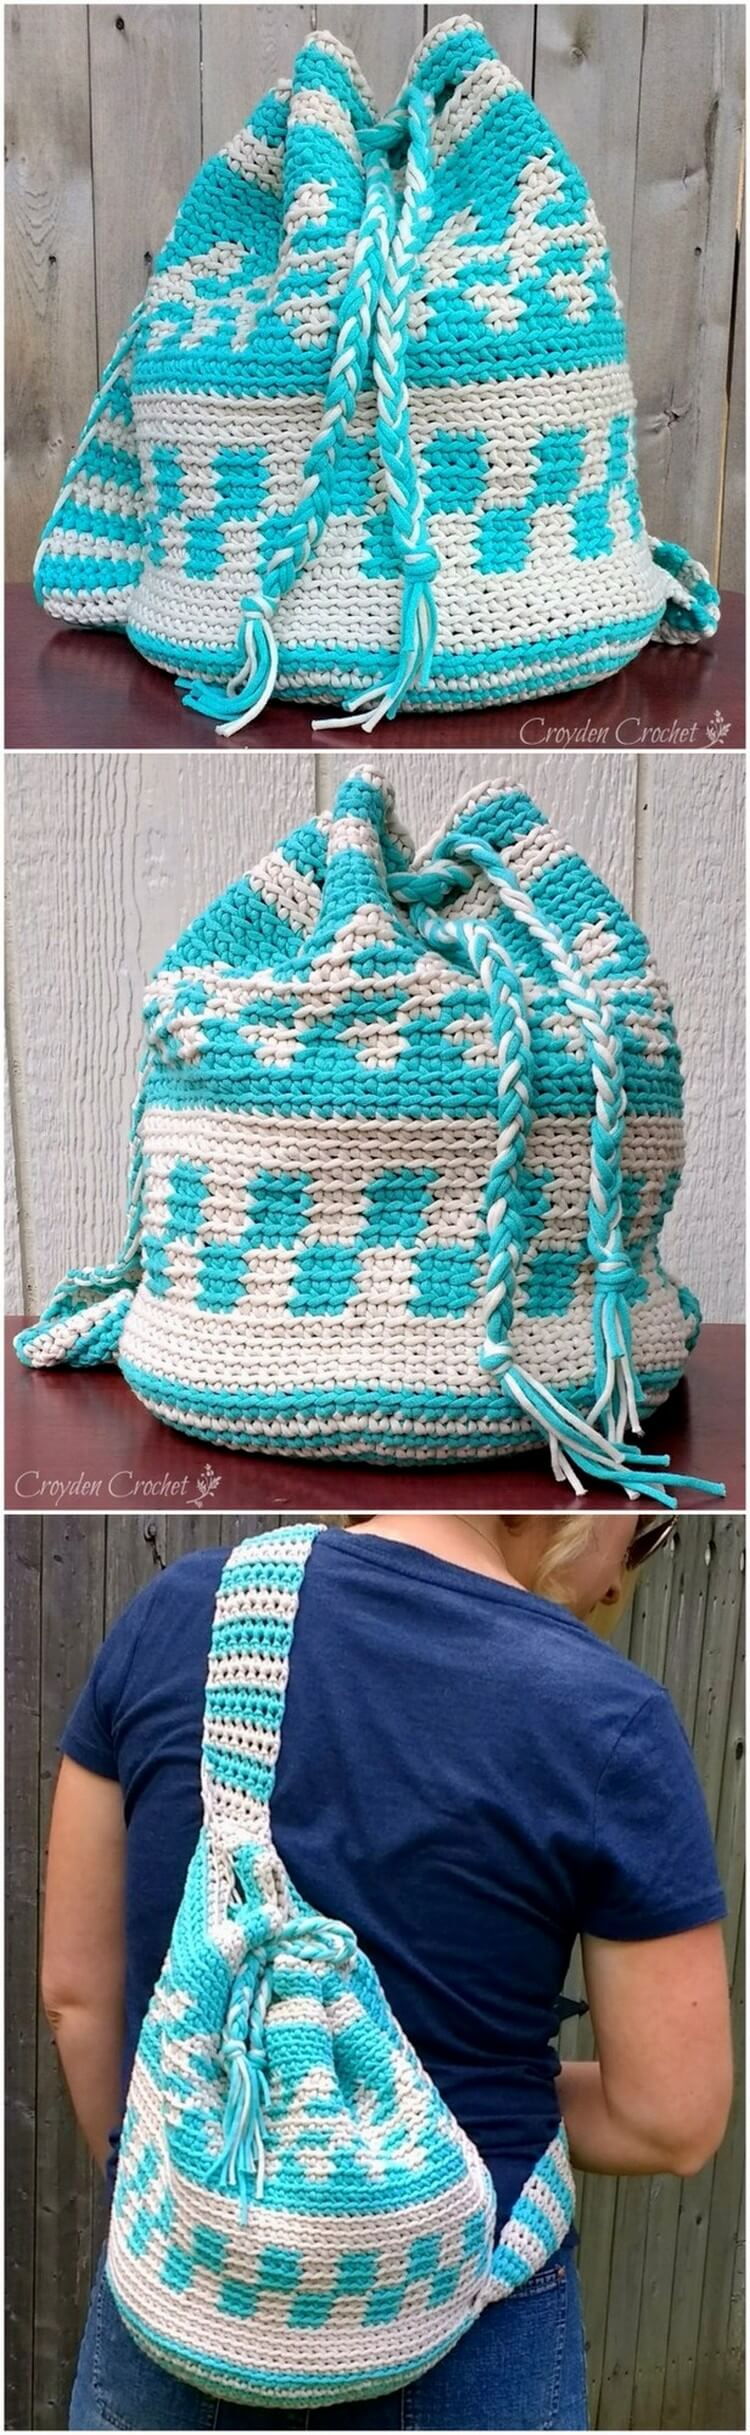 Crochet Backpack Pattern (7)